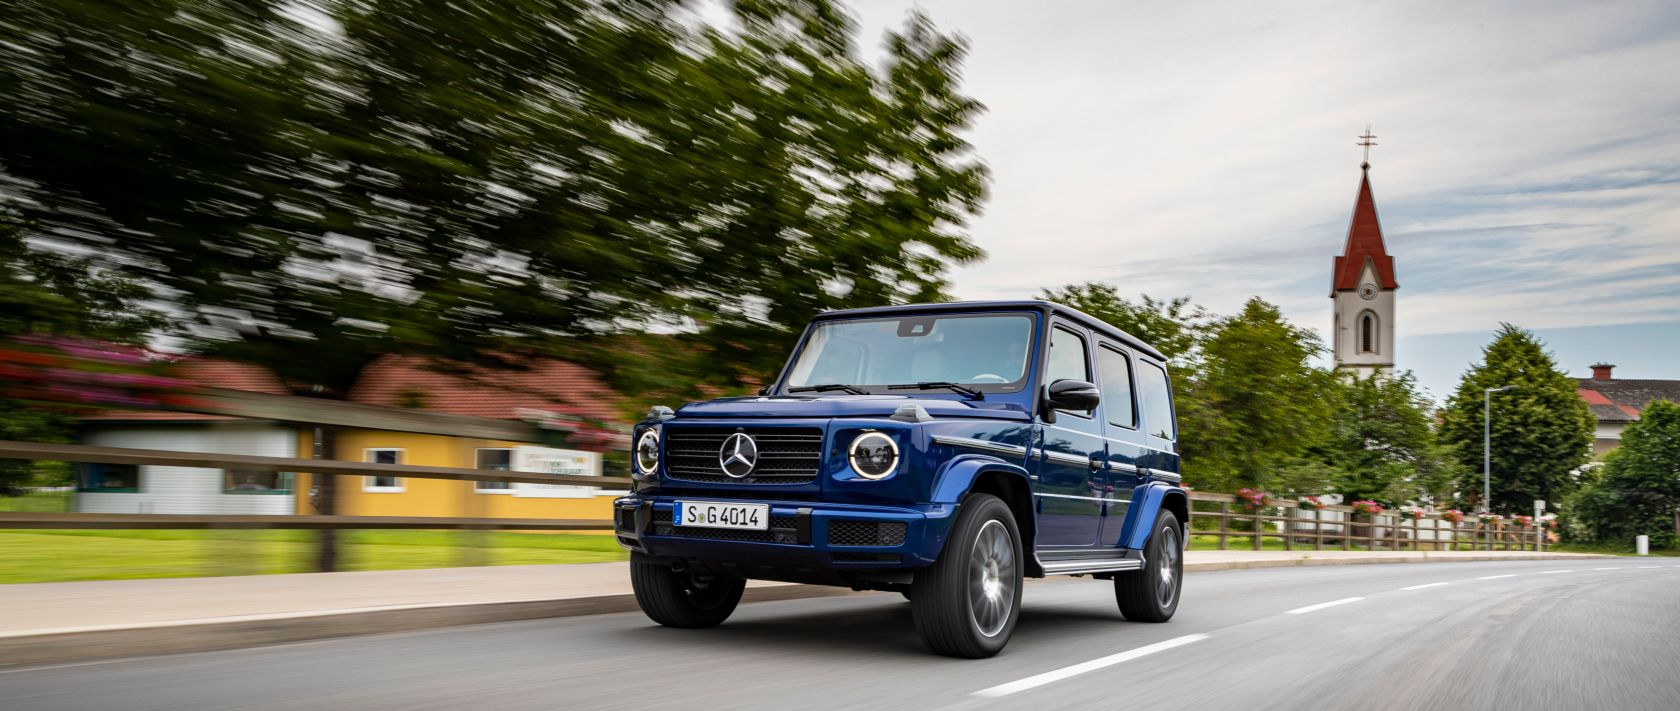 The Mercedes-Benz G 400 d (W 463) in brilliant blue on a road.